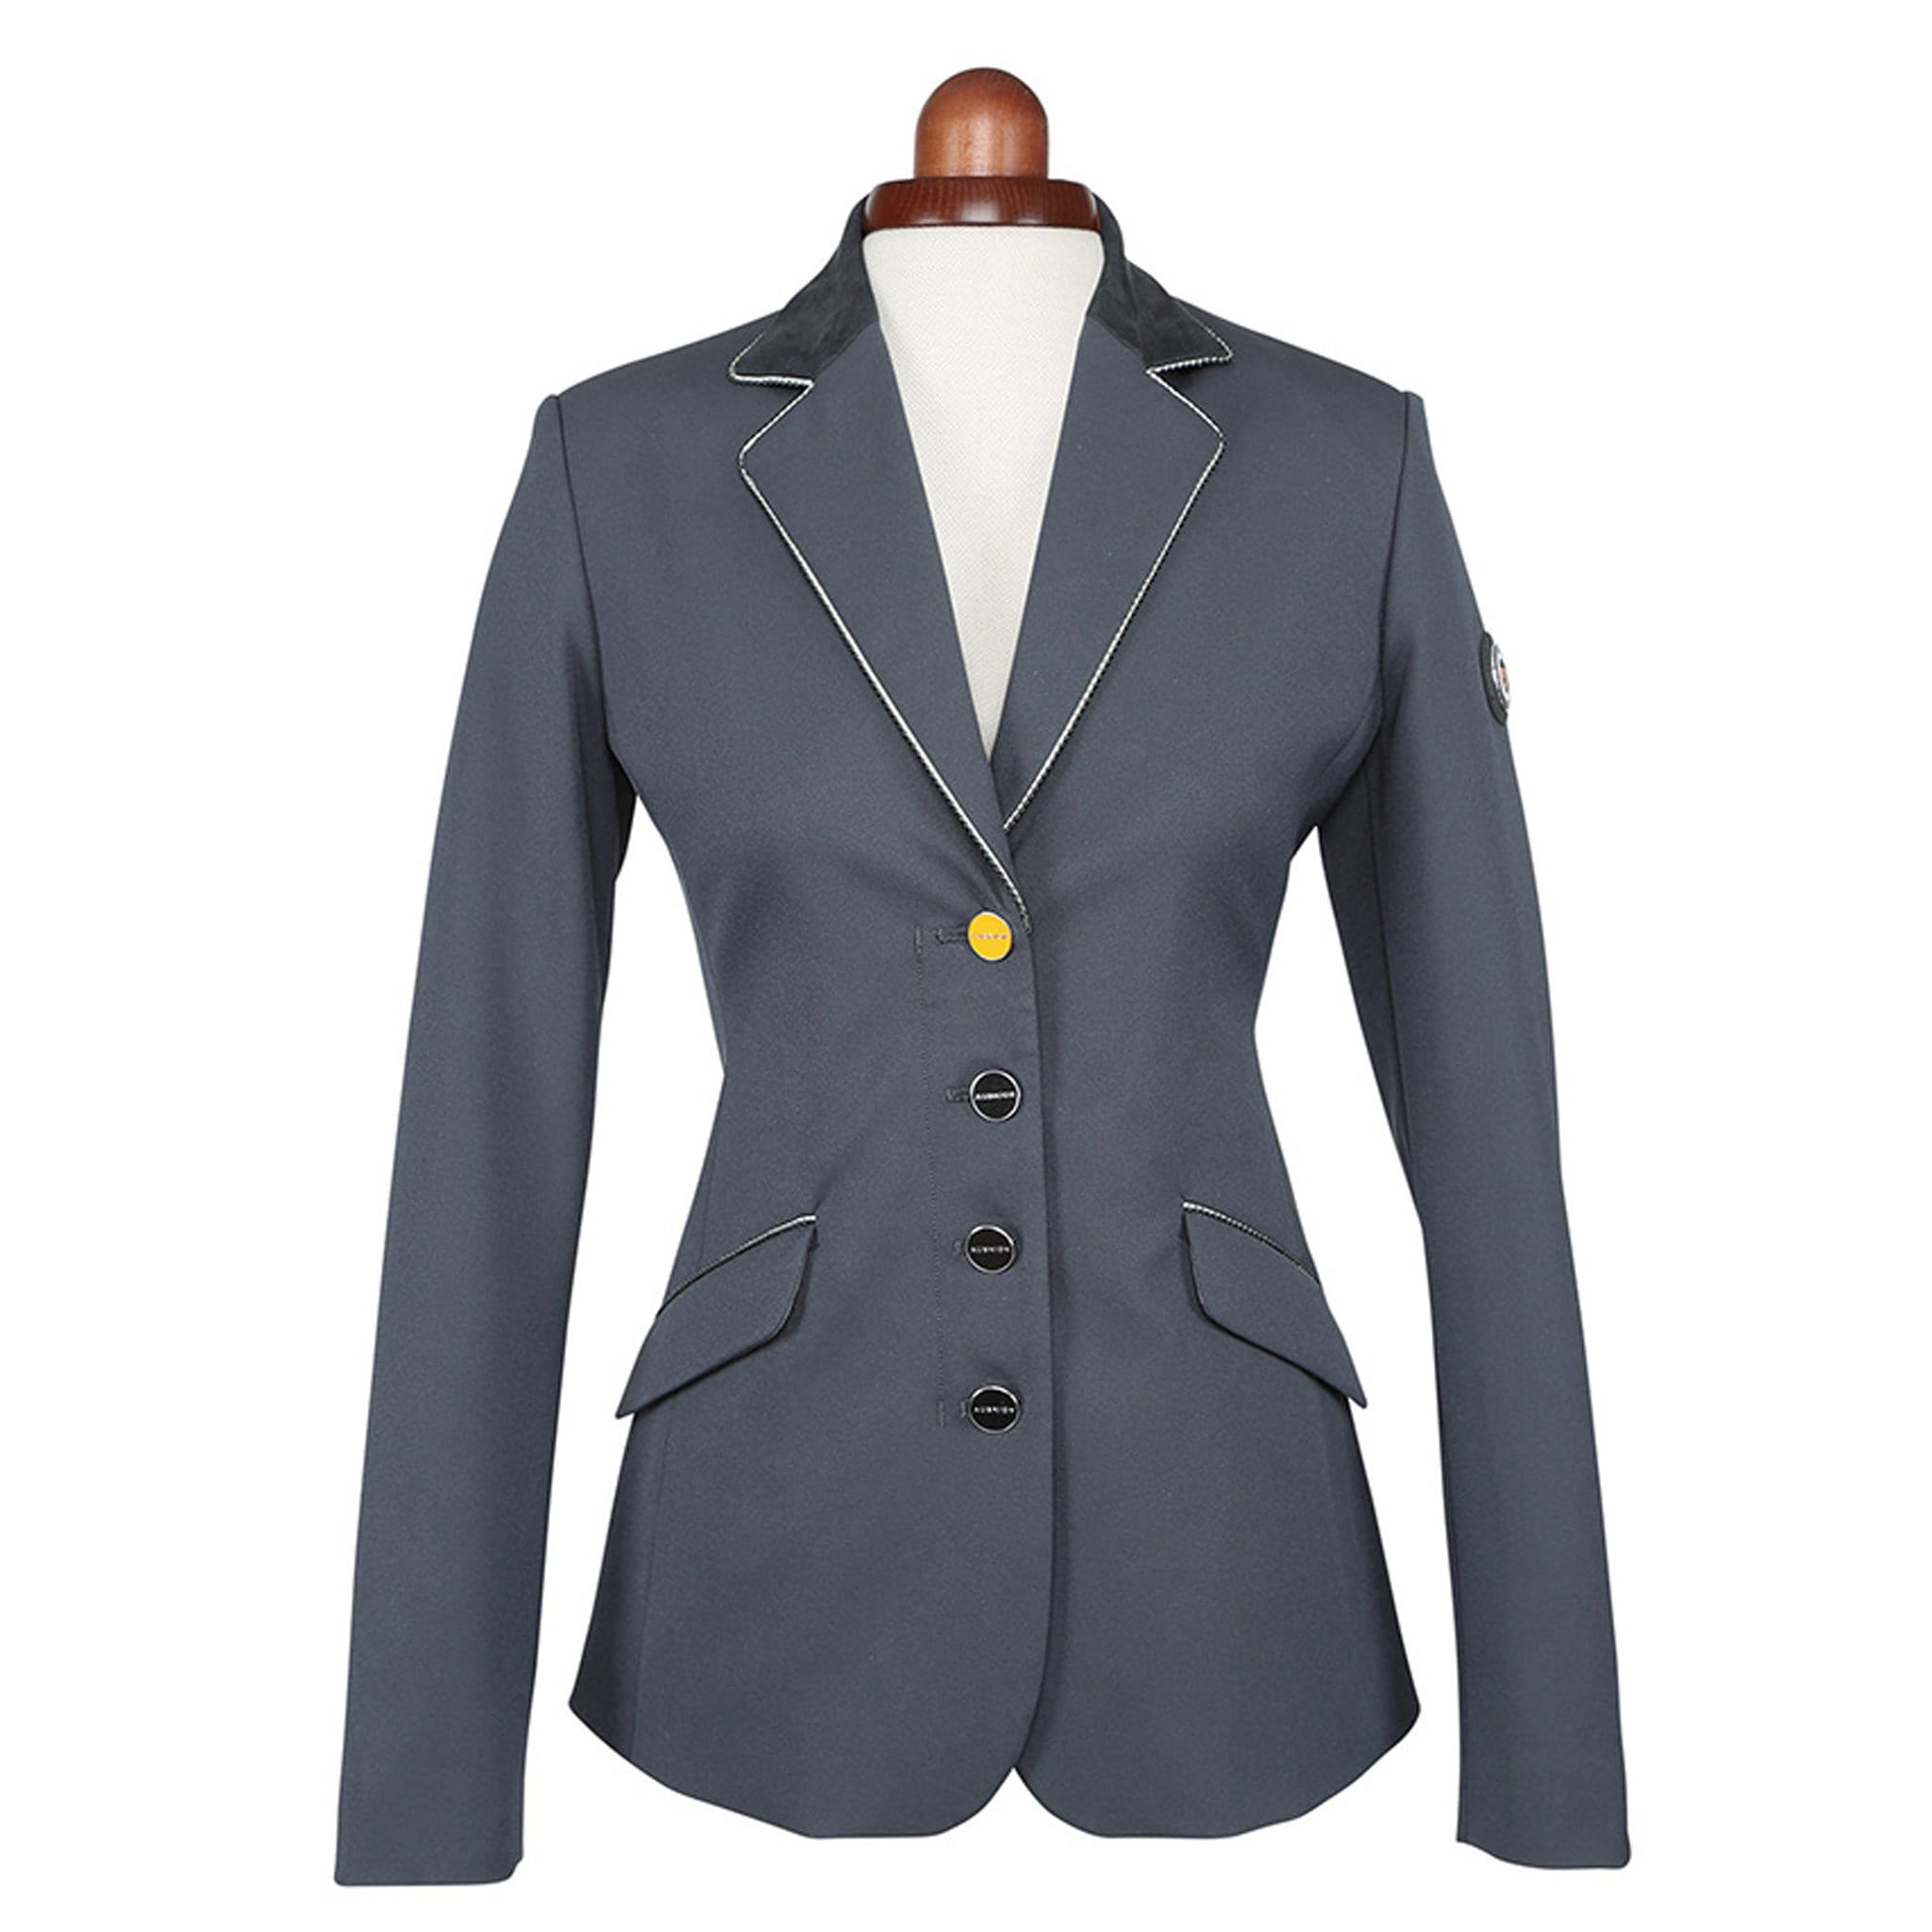 Shires Aubrion Delta Show Jacket Black Studio 9136